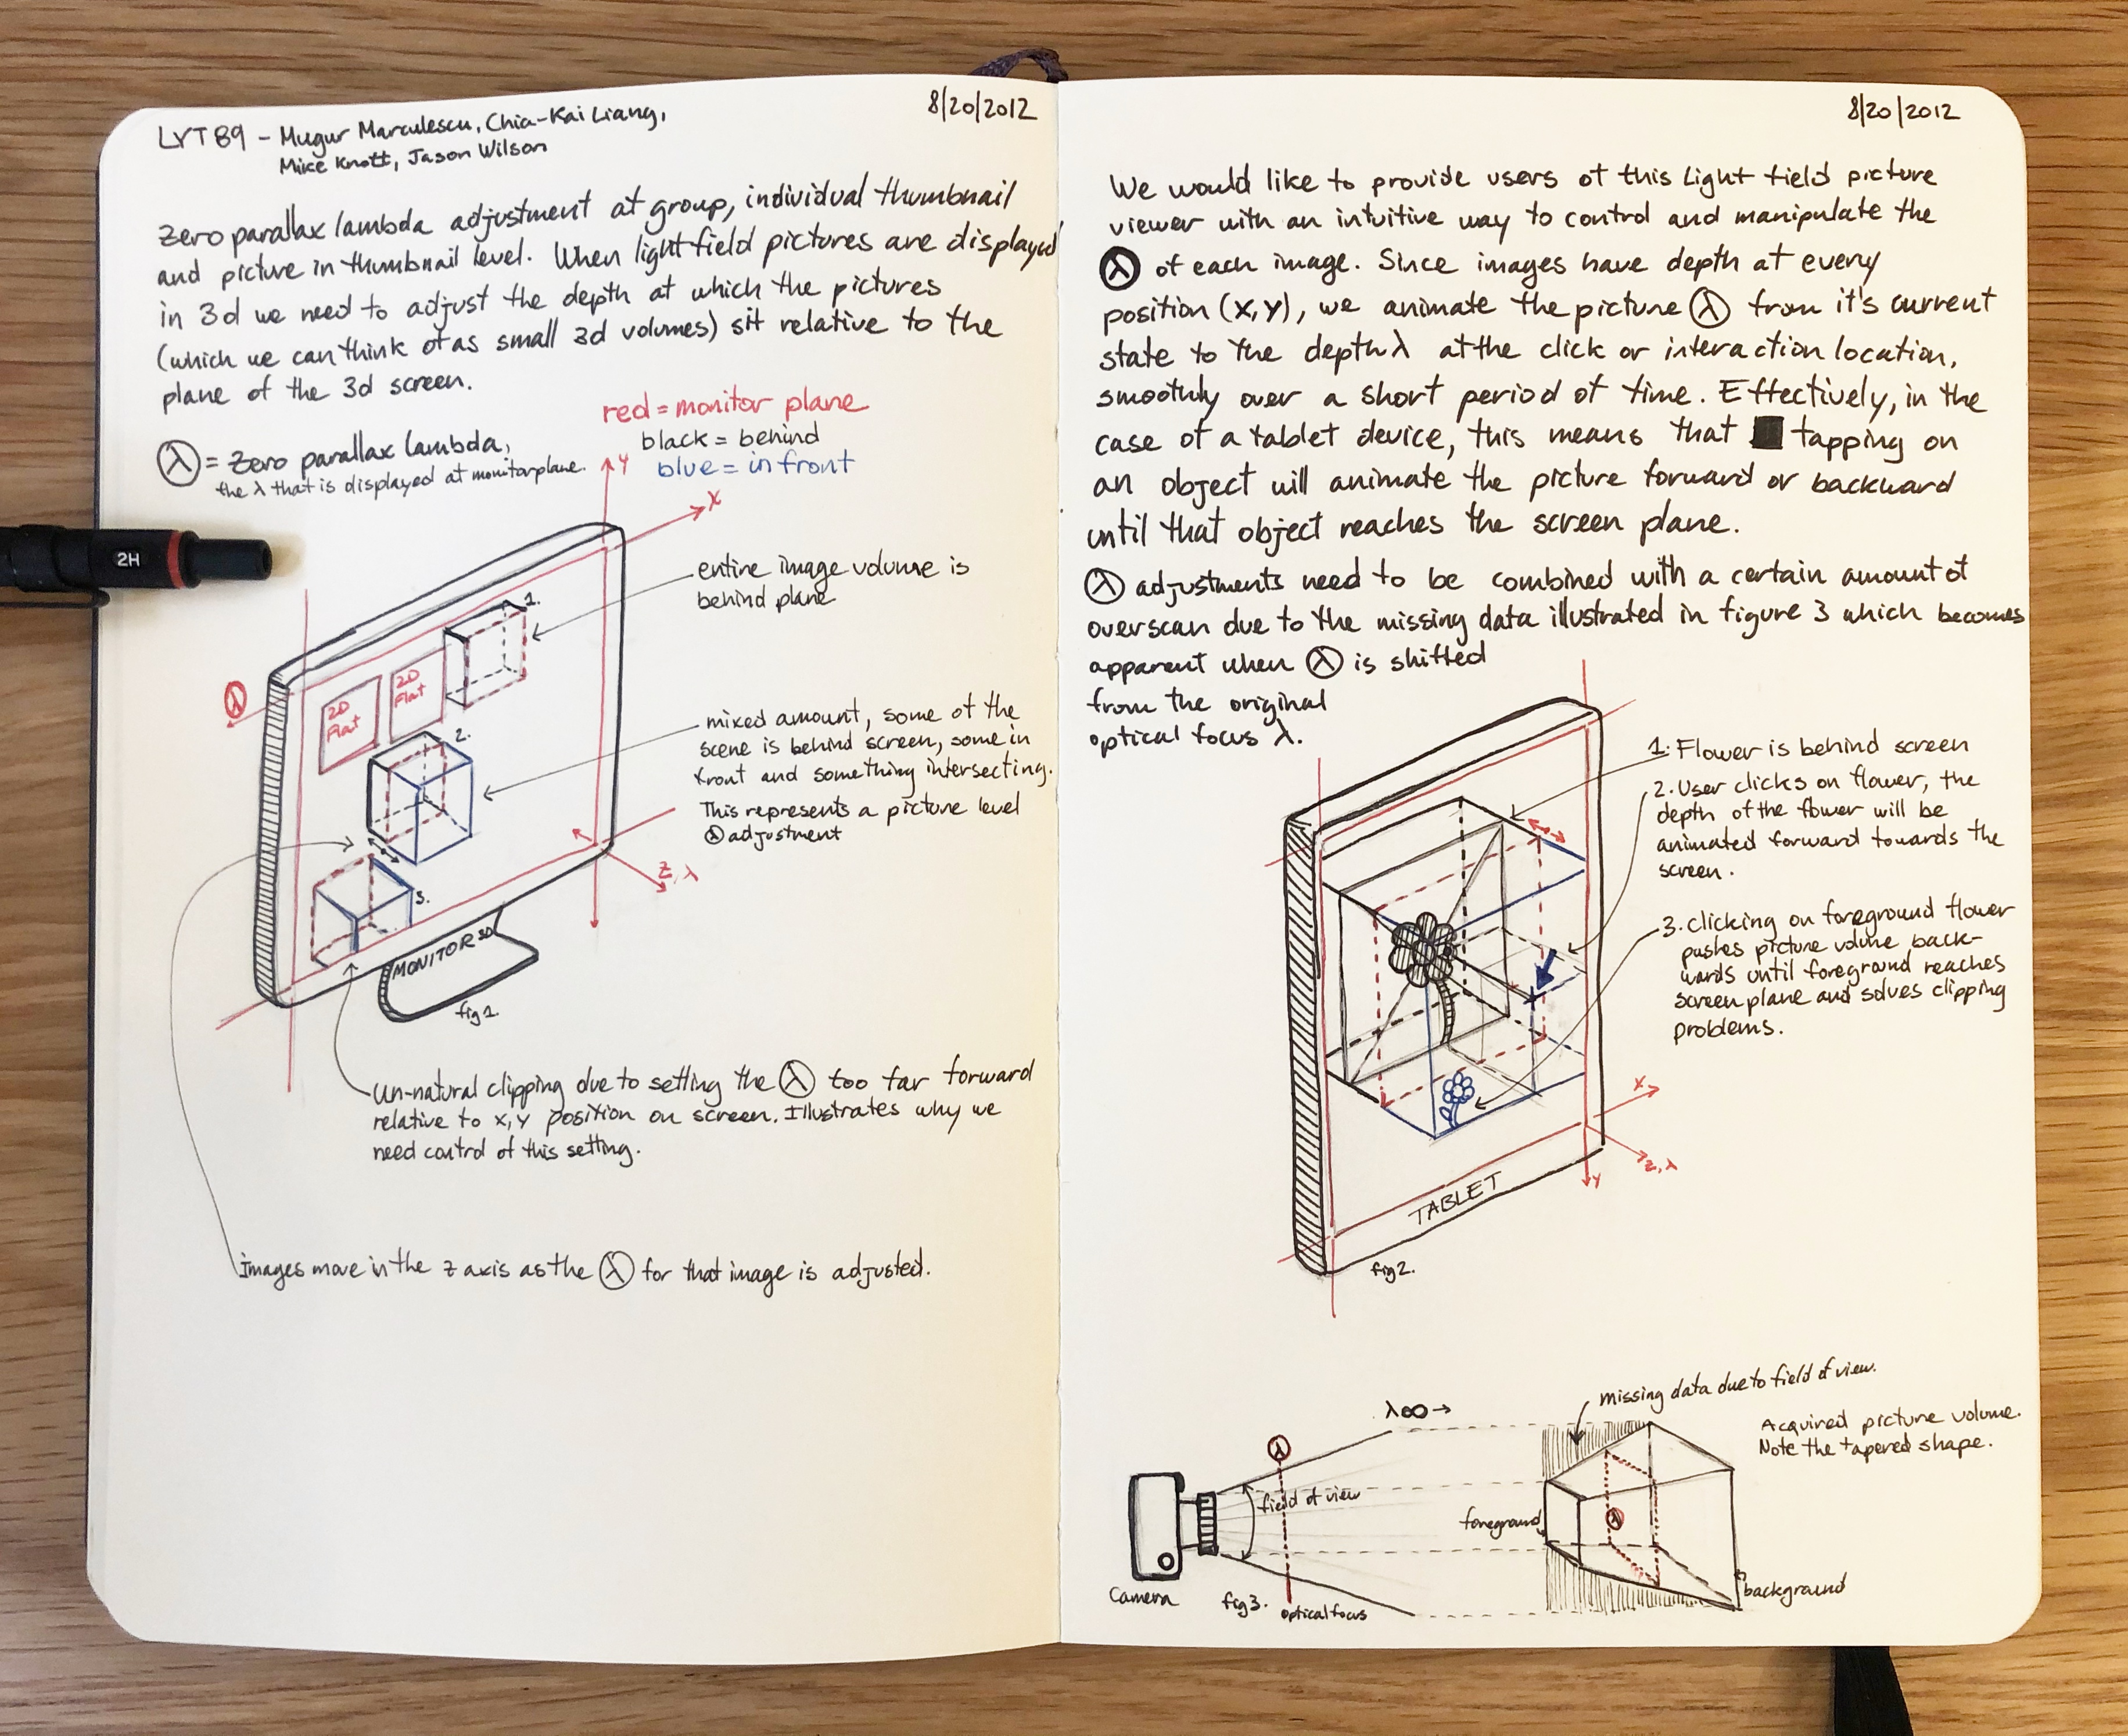 Lytro player UX process sketches for patent application.